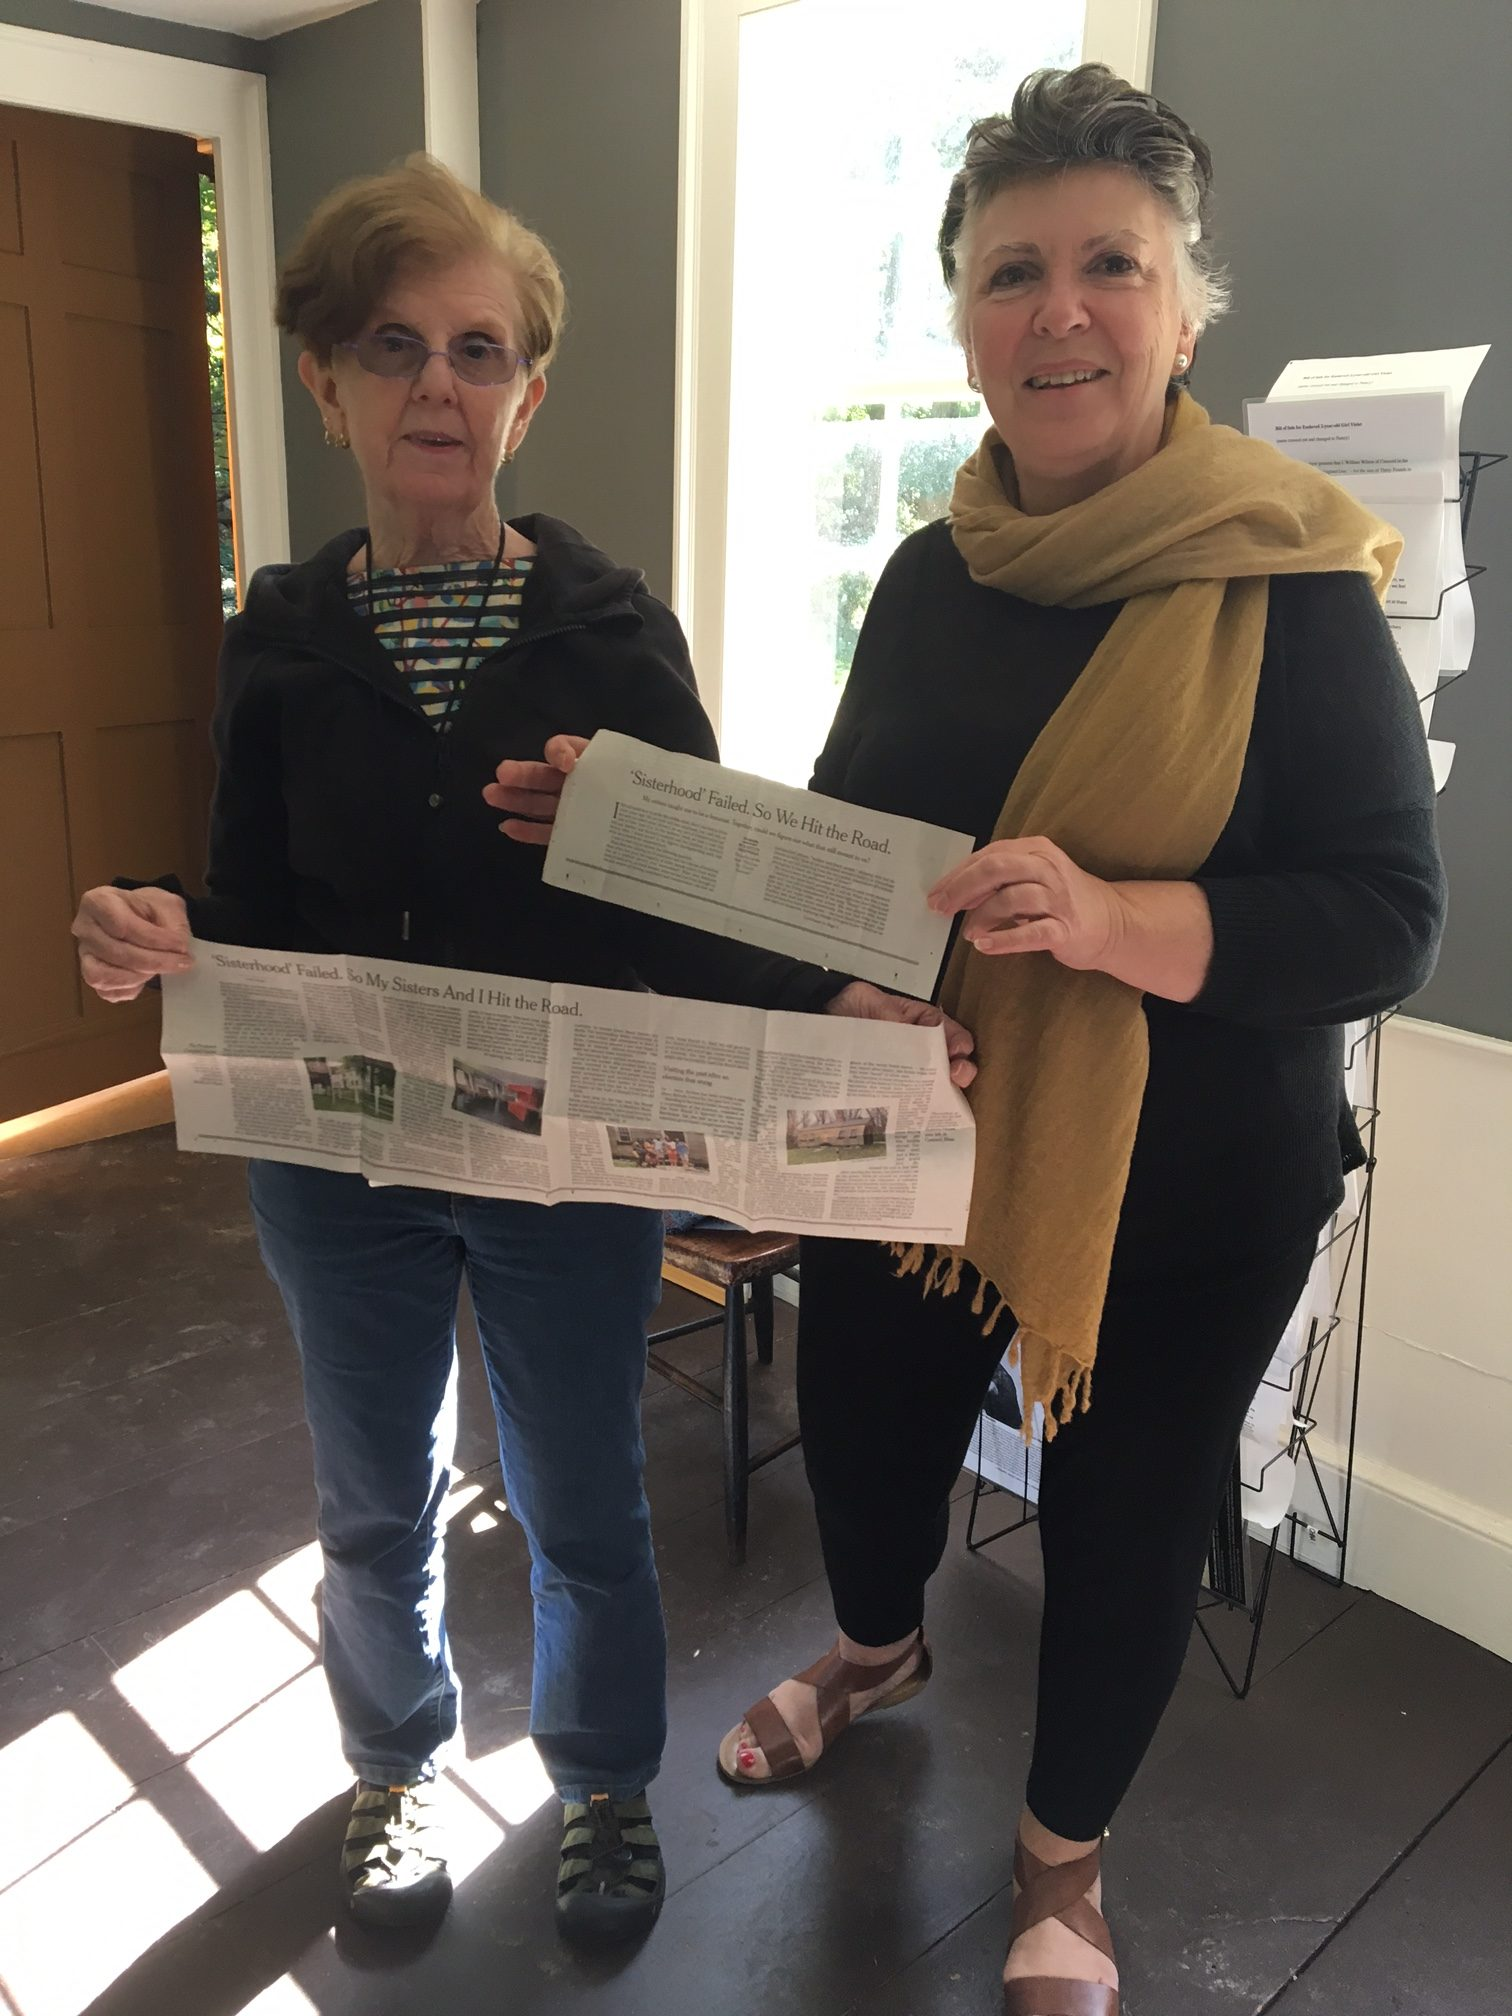 Inspired by this story, retired Framingham teacher Maria (right) and her friend Elaine (left) recently visited the Robbins House to learn Ellen's story, NYT article in hand.